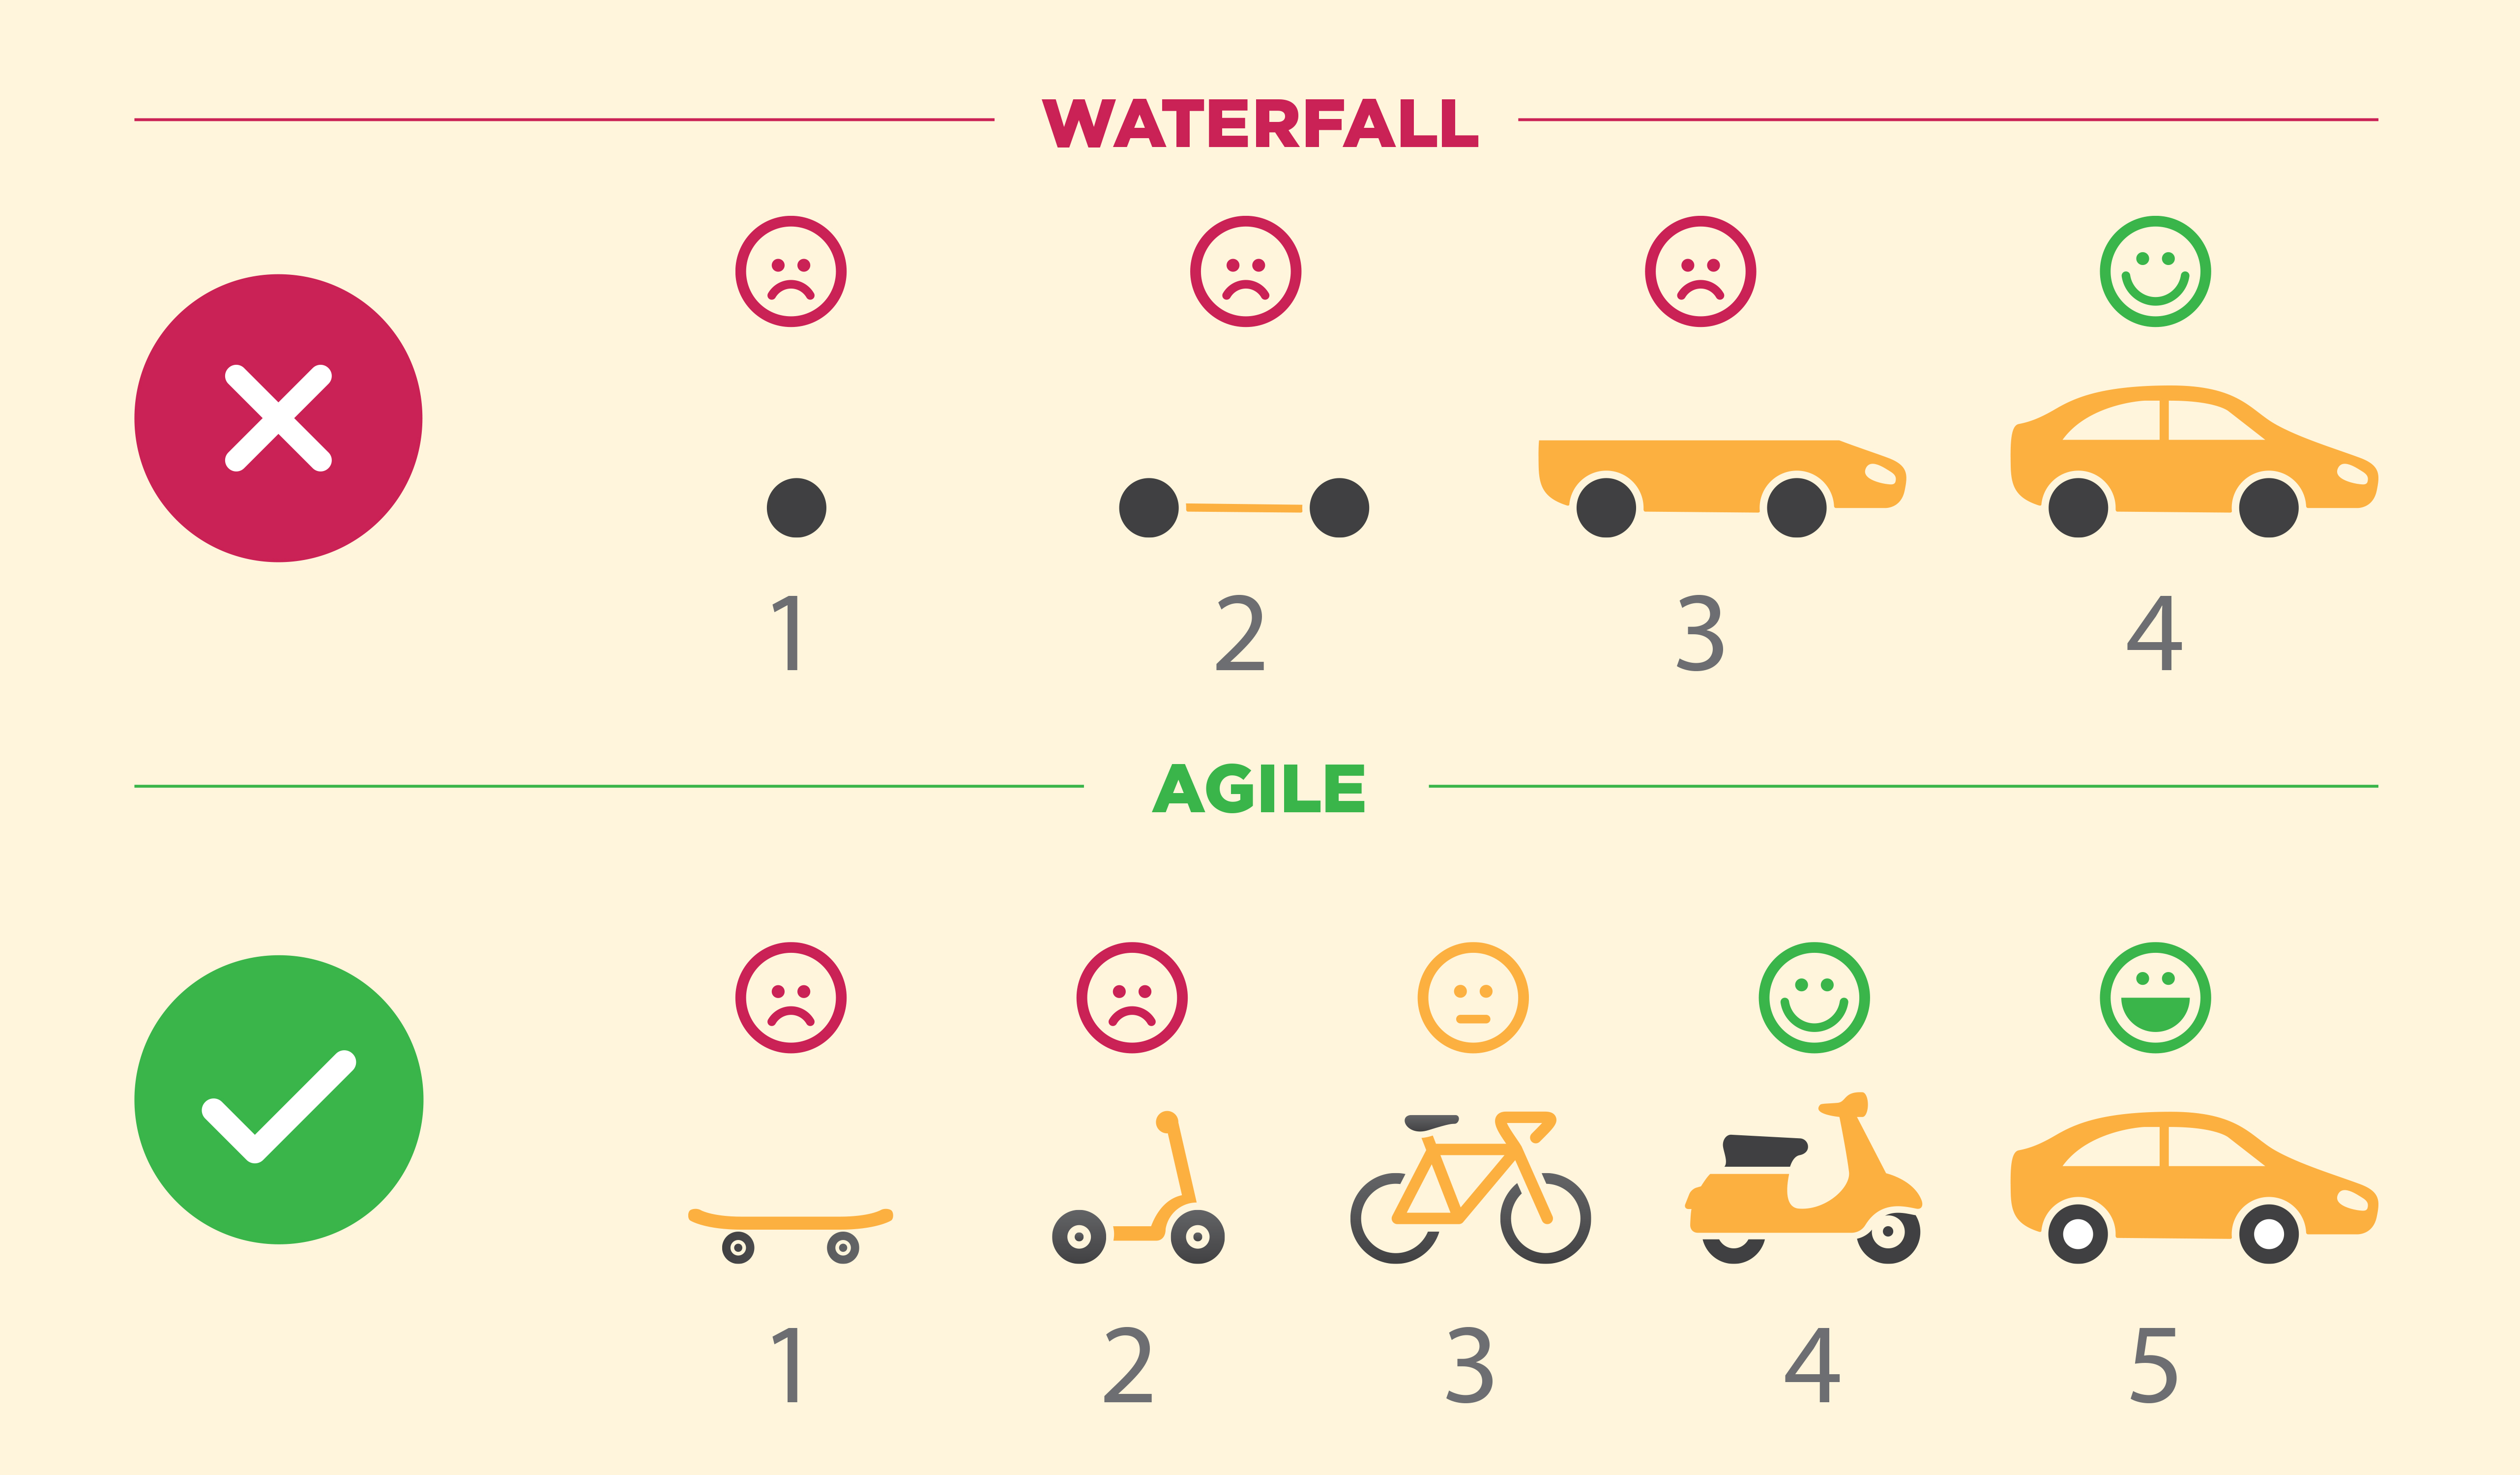 Waterfall_agile